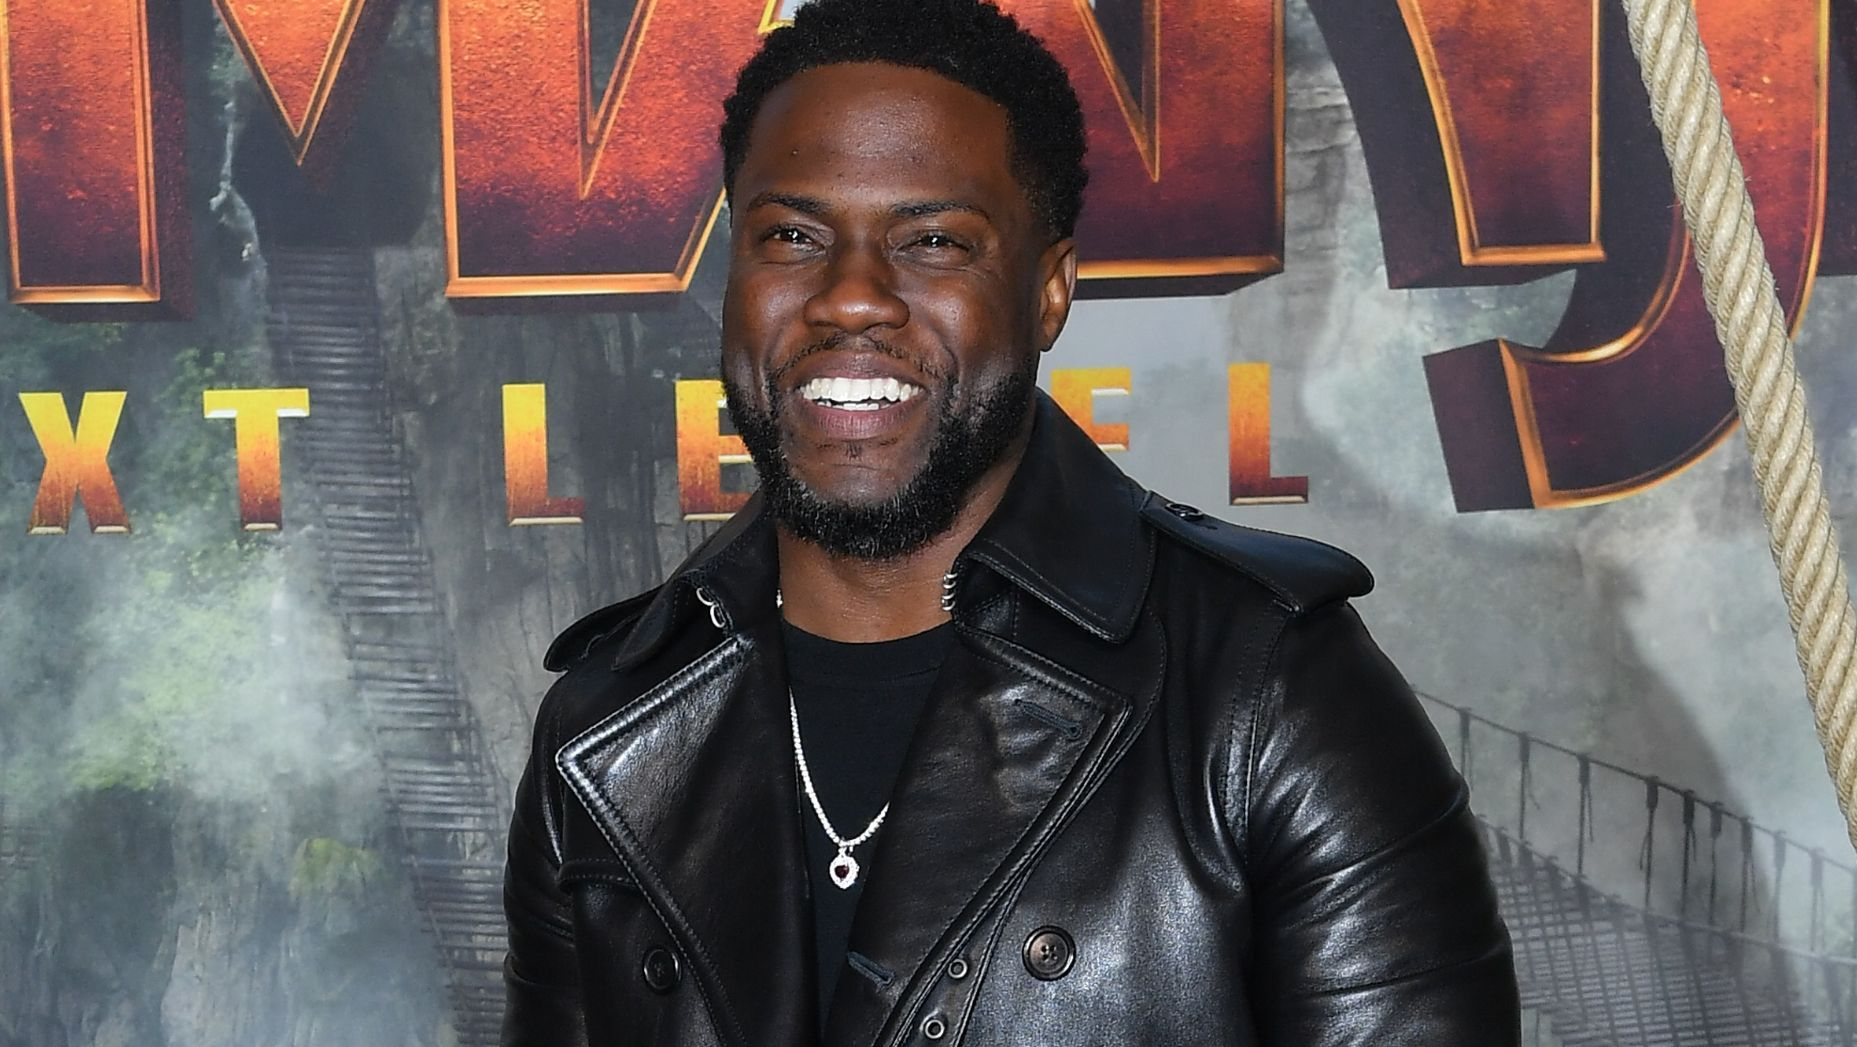 Kevin hart tries to sex tape lawsuit thrown the court with simply process server literally tossed his papers out. The 40-year-old actor new legal documents claiming the lawsuit must be dismissed properly served by the process server. Now, it also similar to the lawsuit alleges process server simply threw onset of papers views in the security guard. According, the new legal claims to servered the case filed against him Montia sabbag. Then, the hart alleged sex tape partner sued him claiming friend conspired to tape their encounter. The simple set of the papers car window in the view of a security guard outside the gate of his home. Now, you ensure the on-ground on outside the server car. Then, The improper service on the judge to dismiss the case as well as  the broke the  story sabbag sued Kevin September.  Alleging her 2017 encounter with him in the vegas room was planned by hart and IT Jackson.  Now, He respectively denied having knowledge of the recording with Jackson extortion attempts. Then, this actor asking with the judge who oversees the case to withdraw the disputed court due to legal technology as well as he did not receive the legal notice. There is hart argues that process on simple threw set of papers through the window of the car in view of a security guard outside the door of his house.  Now, the court filing obtained includes a photo of discarded documents and hart explains that the lawsuit should be dismissed the guard does not live on his property. It is not authorized to accept the legal notices on behalf of the funny man. Now,  it always denied having set off for the sex tape which shook his marriage to an Eniko Hart then pregnant. The seeks damage for inflicting emotional distress and invasion of privacy. Jackson is facing personal identifying information and count of attempted concealing and selling stolen property. Now, it also considers the public comment about the lawsuit at this time